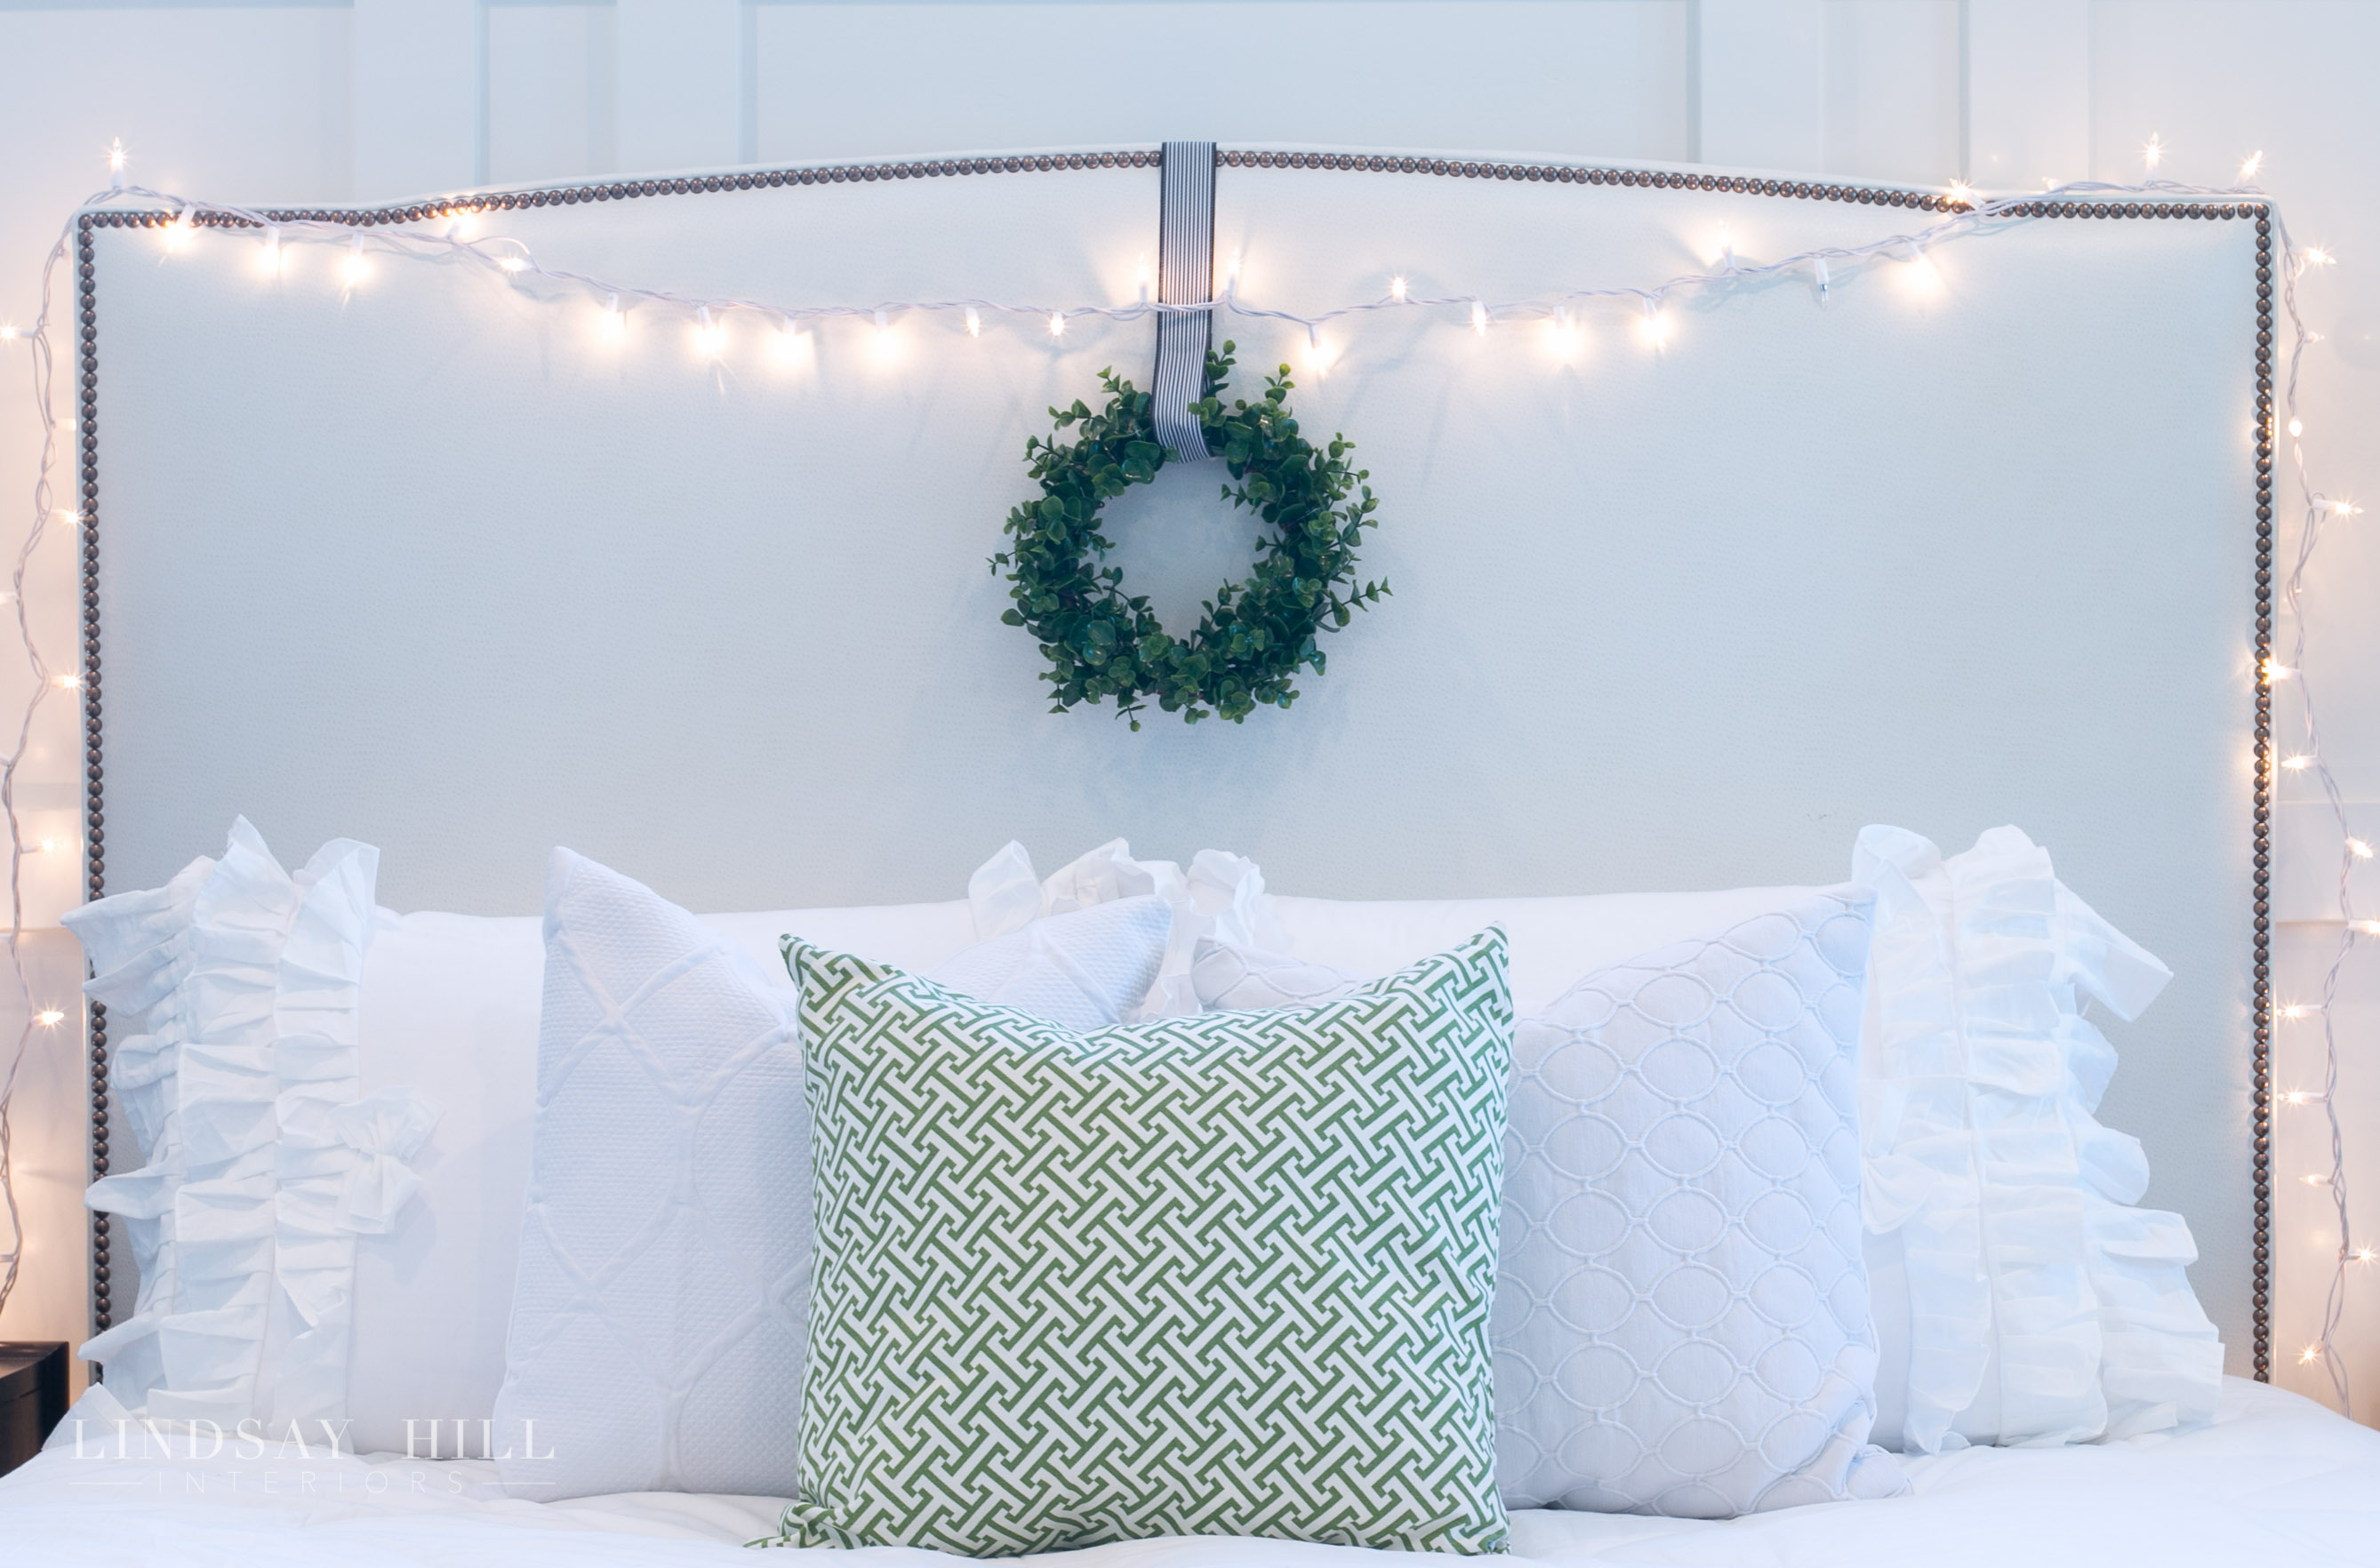 Meaningful Holiday Home Tour - Lindsay Hill Interiors